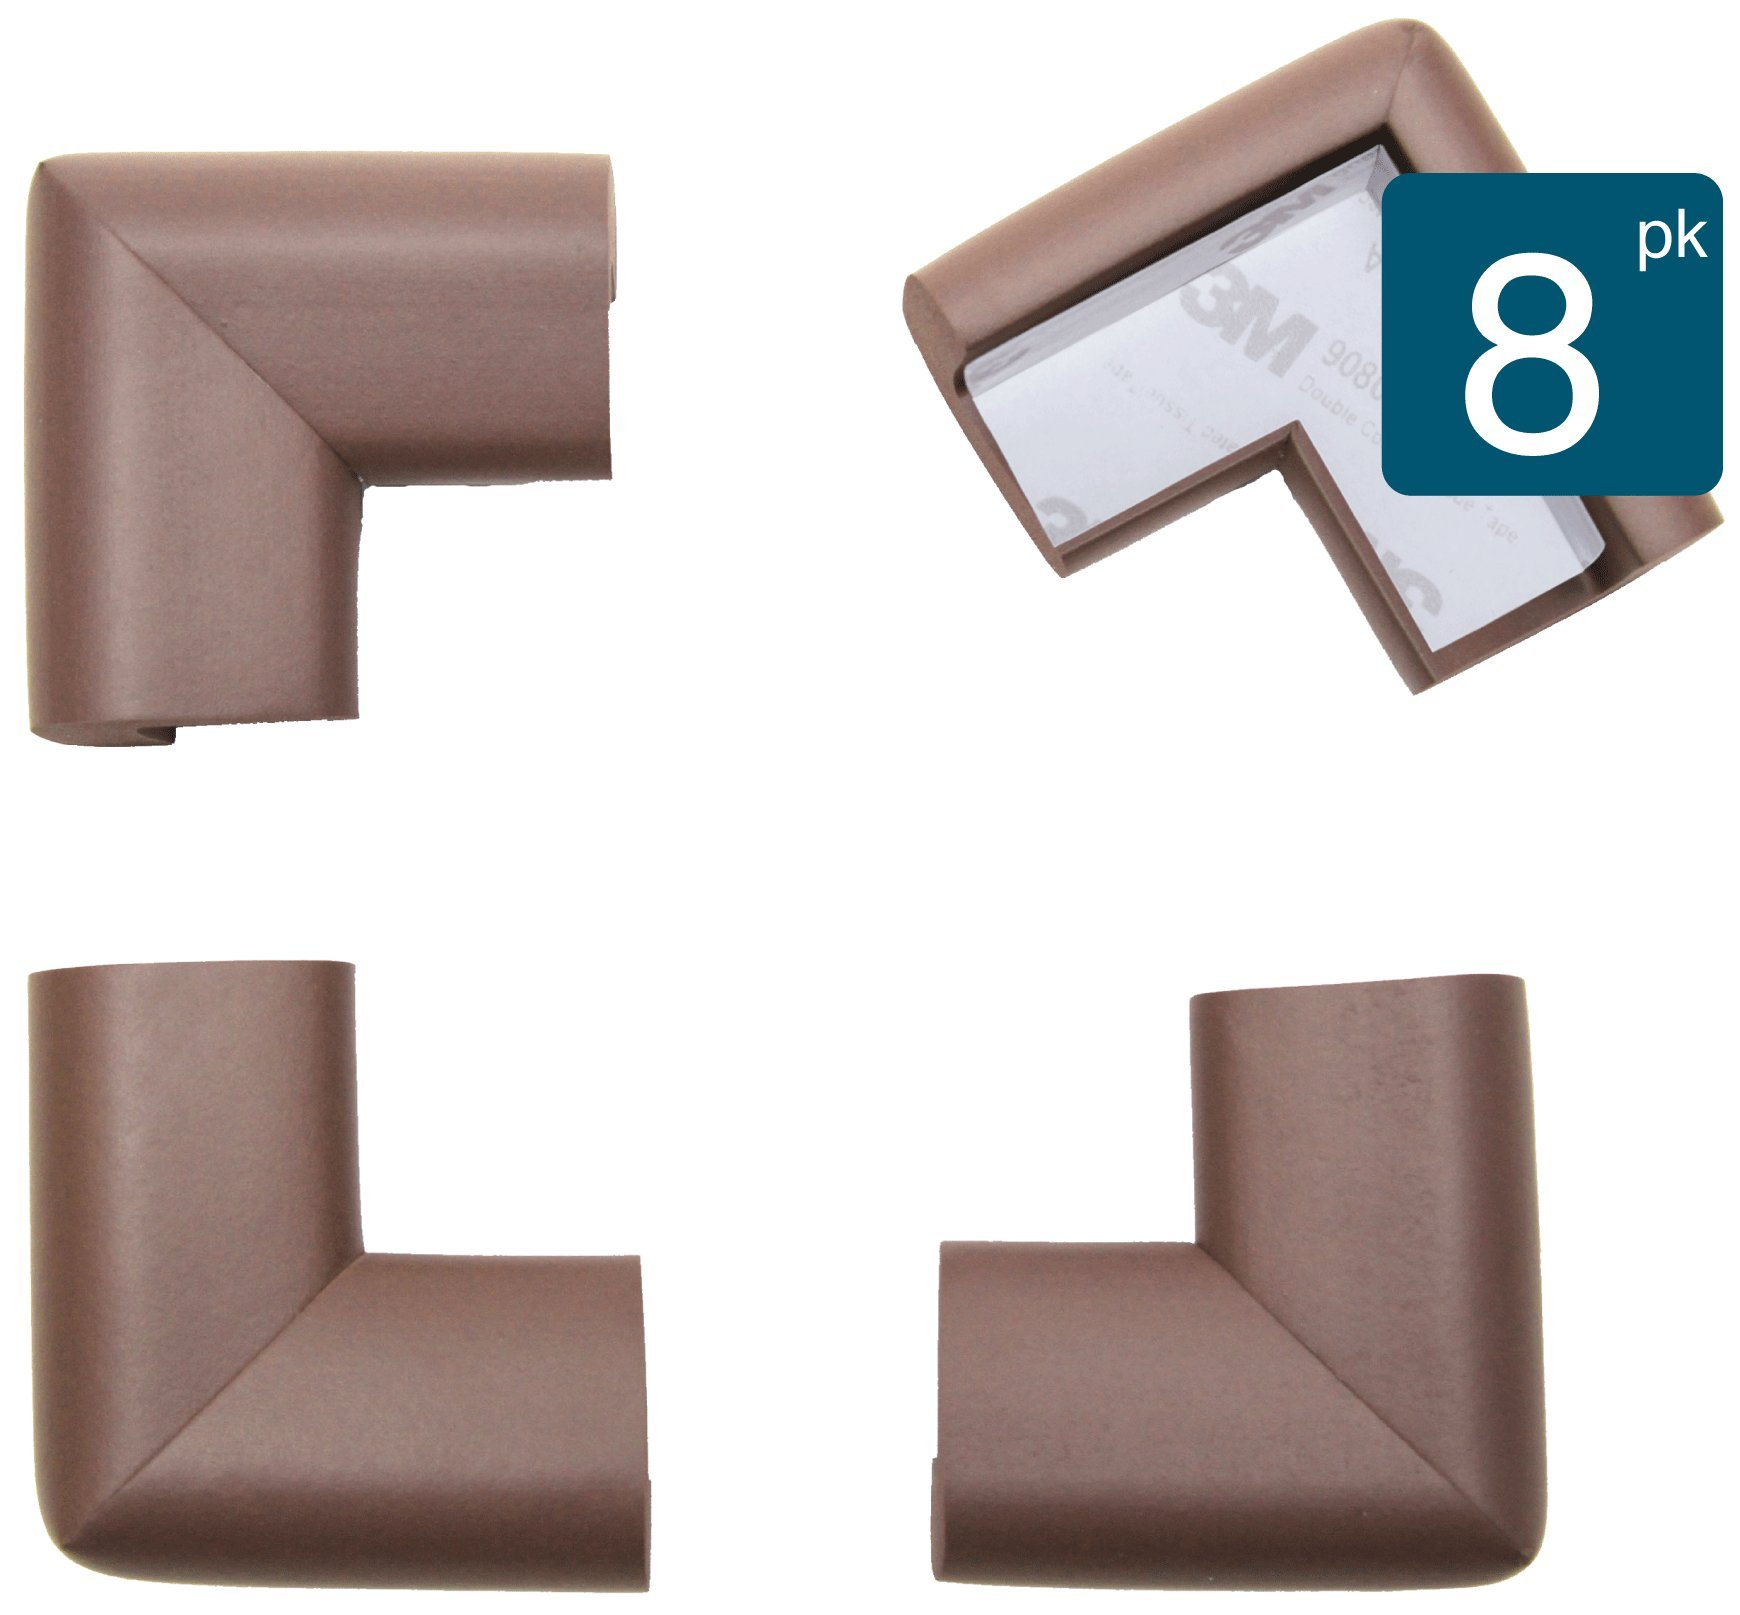 Roving Cove | Baby Proofing Table Corner Guards | Caring Baby Corners | Safe Corner Cushion | Child Safety; Rubber Furniture Bumper Protector | Pre-Taped | 8-Piece Coffee (brown)